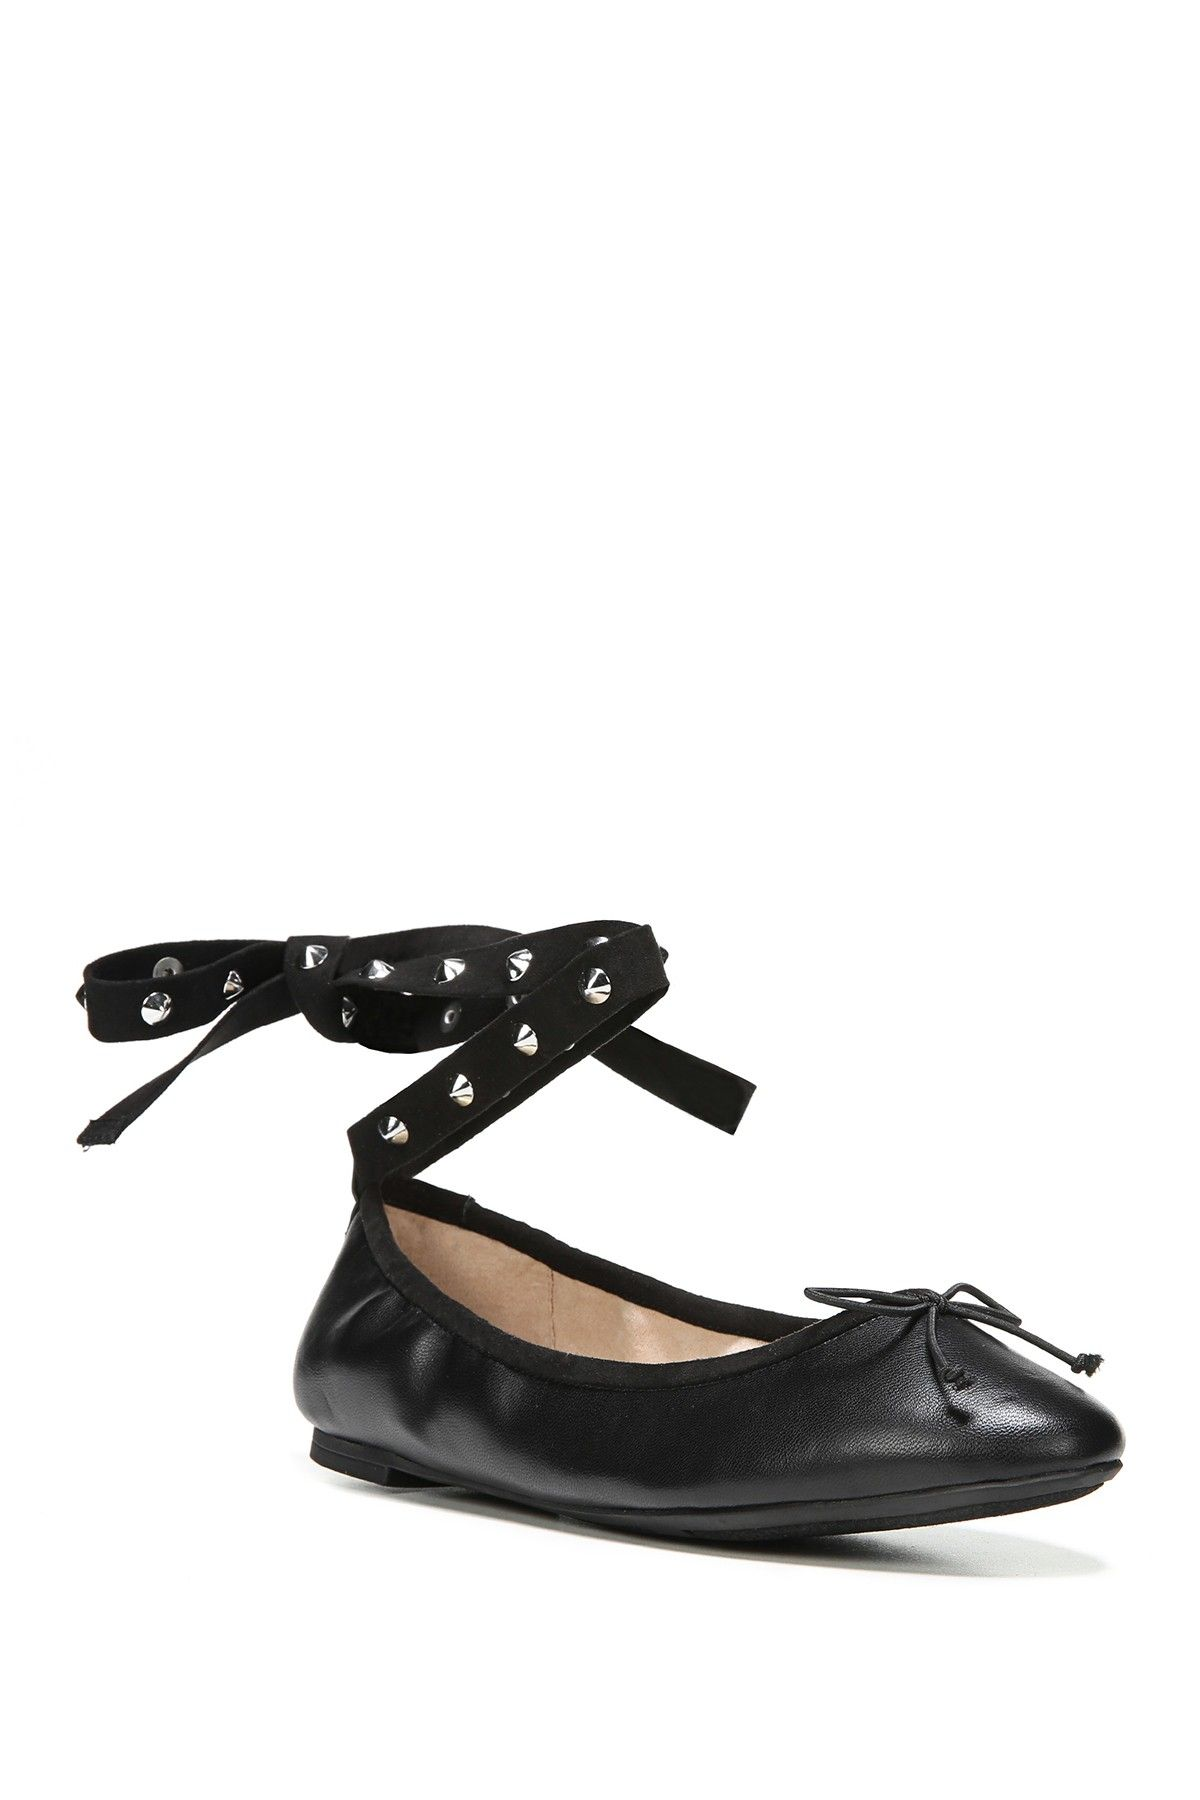 438eb4e1f31e CIRCUS BY SAM EDELMAN Celyn Studded Lace-Up Ballet Flat